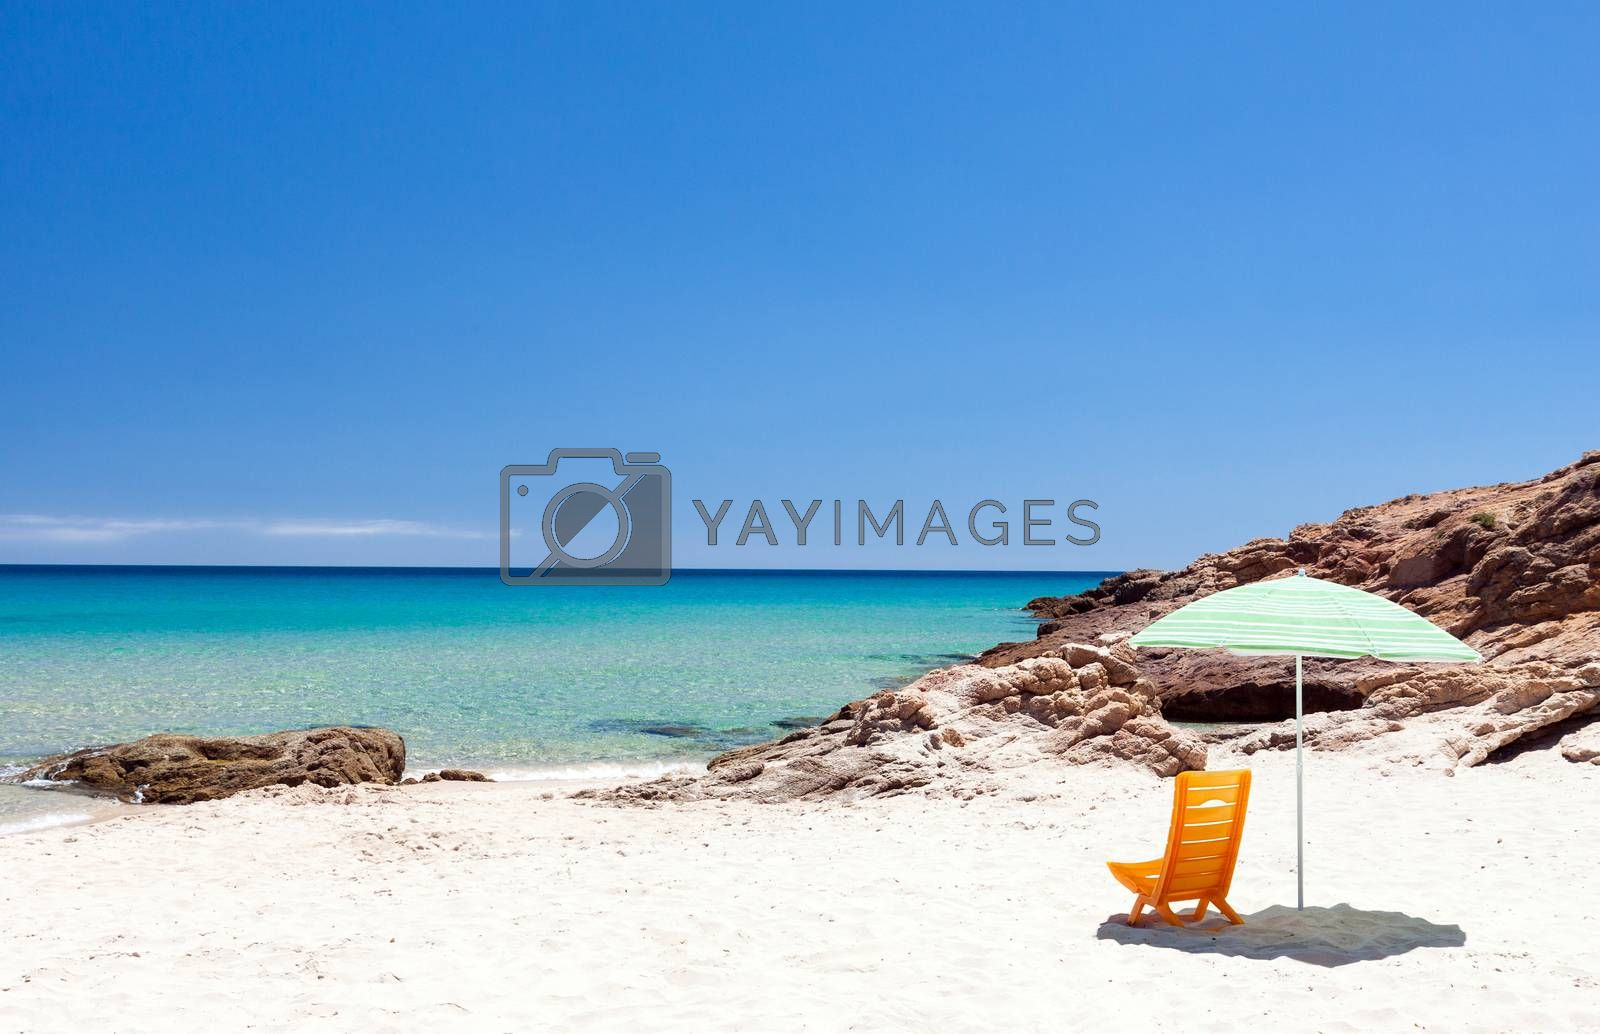 Lonely lounge chair with sun umbrella on a beach in Sardinia, Italy